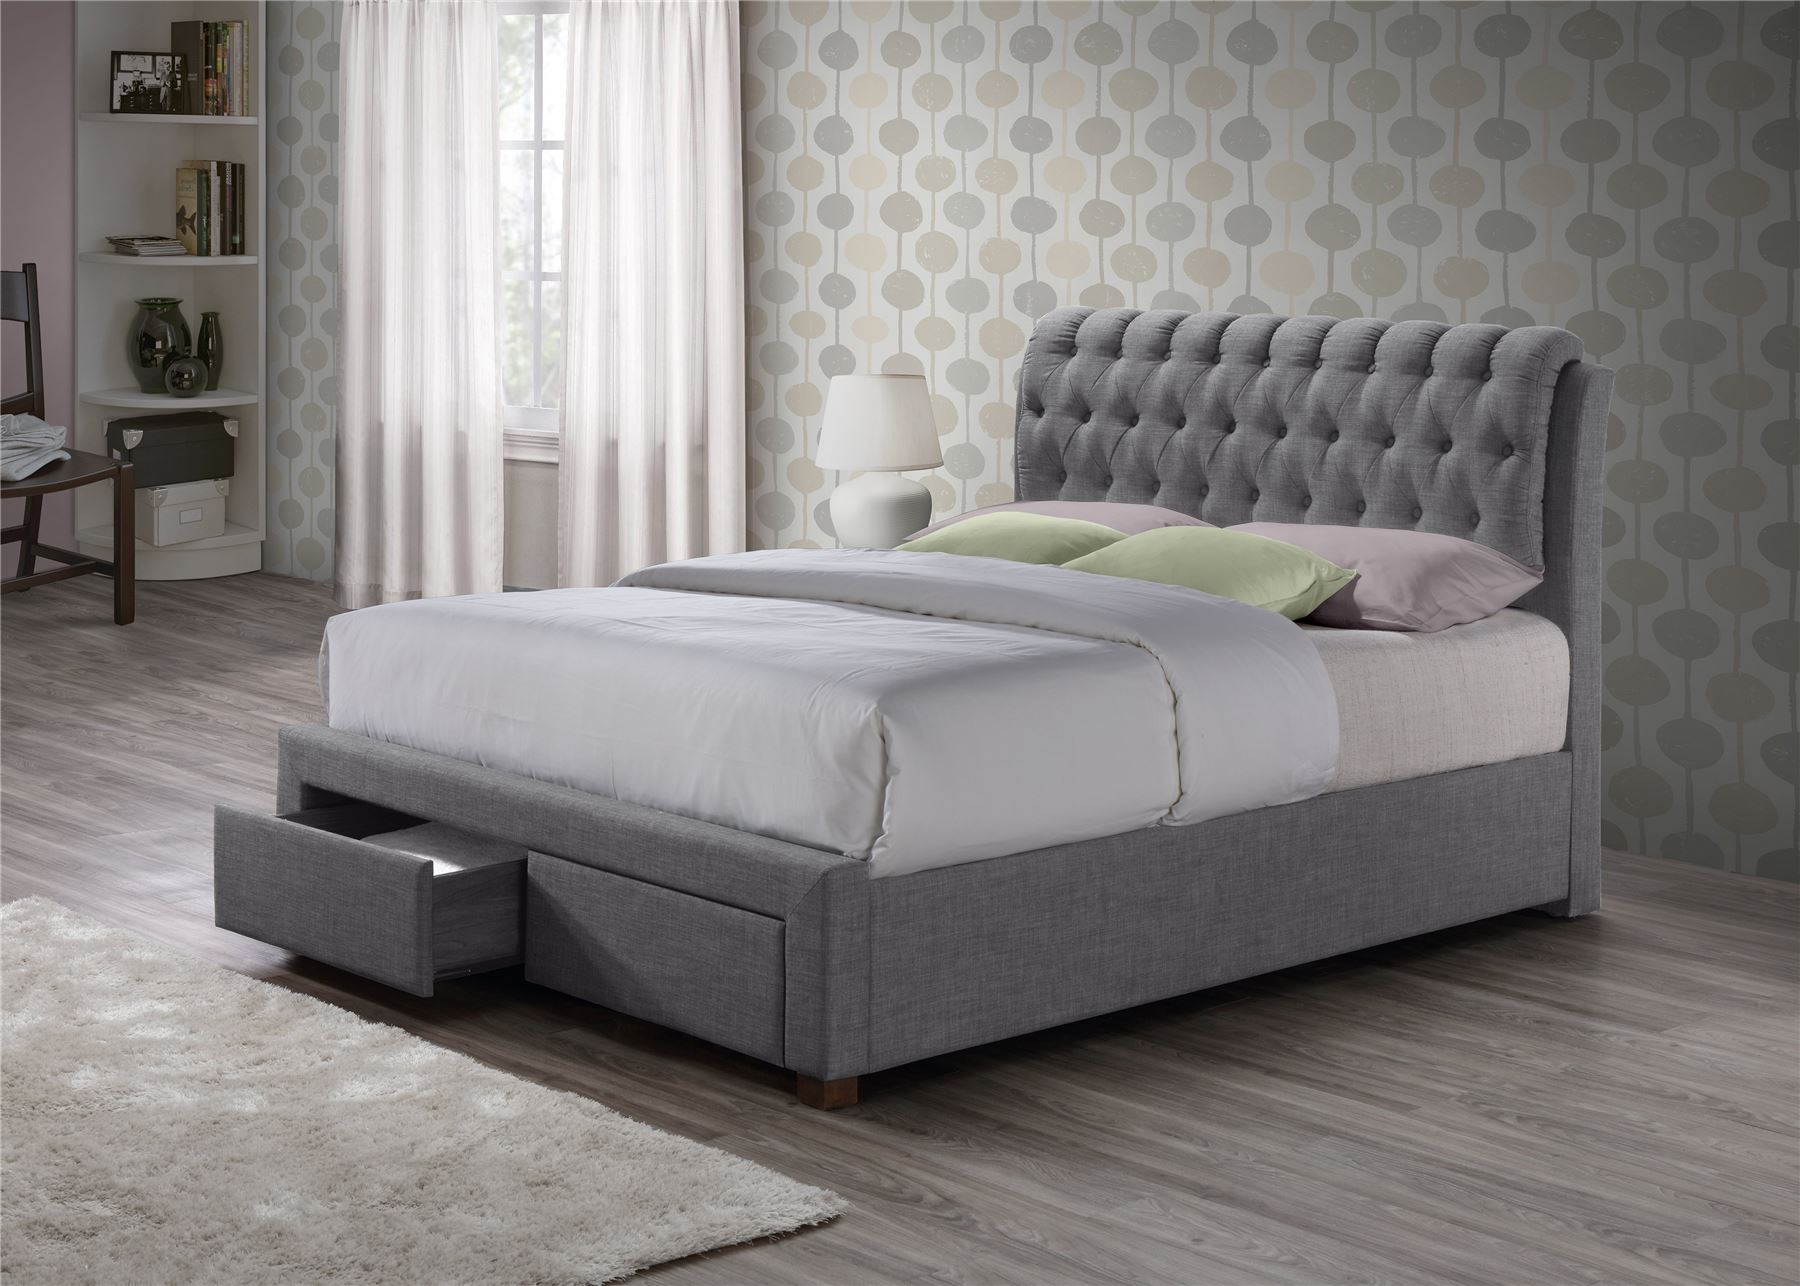 Birlea Valentino Grey Luxury 2 Drawer Storage Bed Frame King Size 150cm 5FT